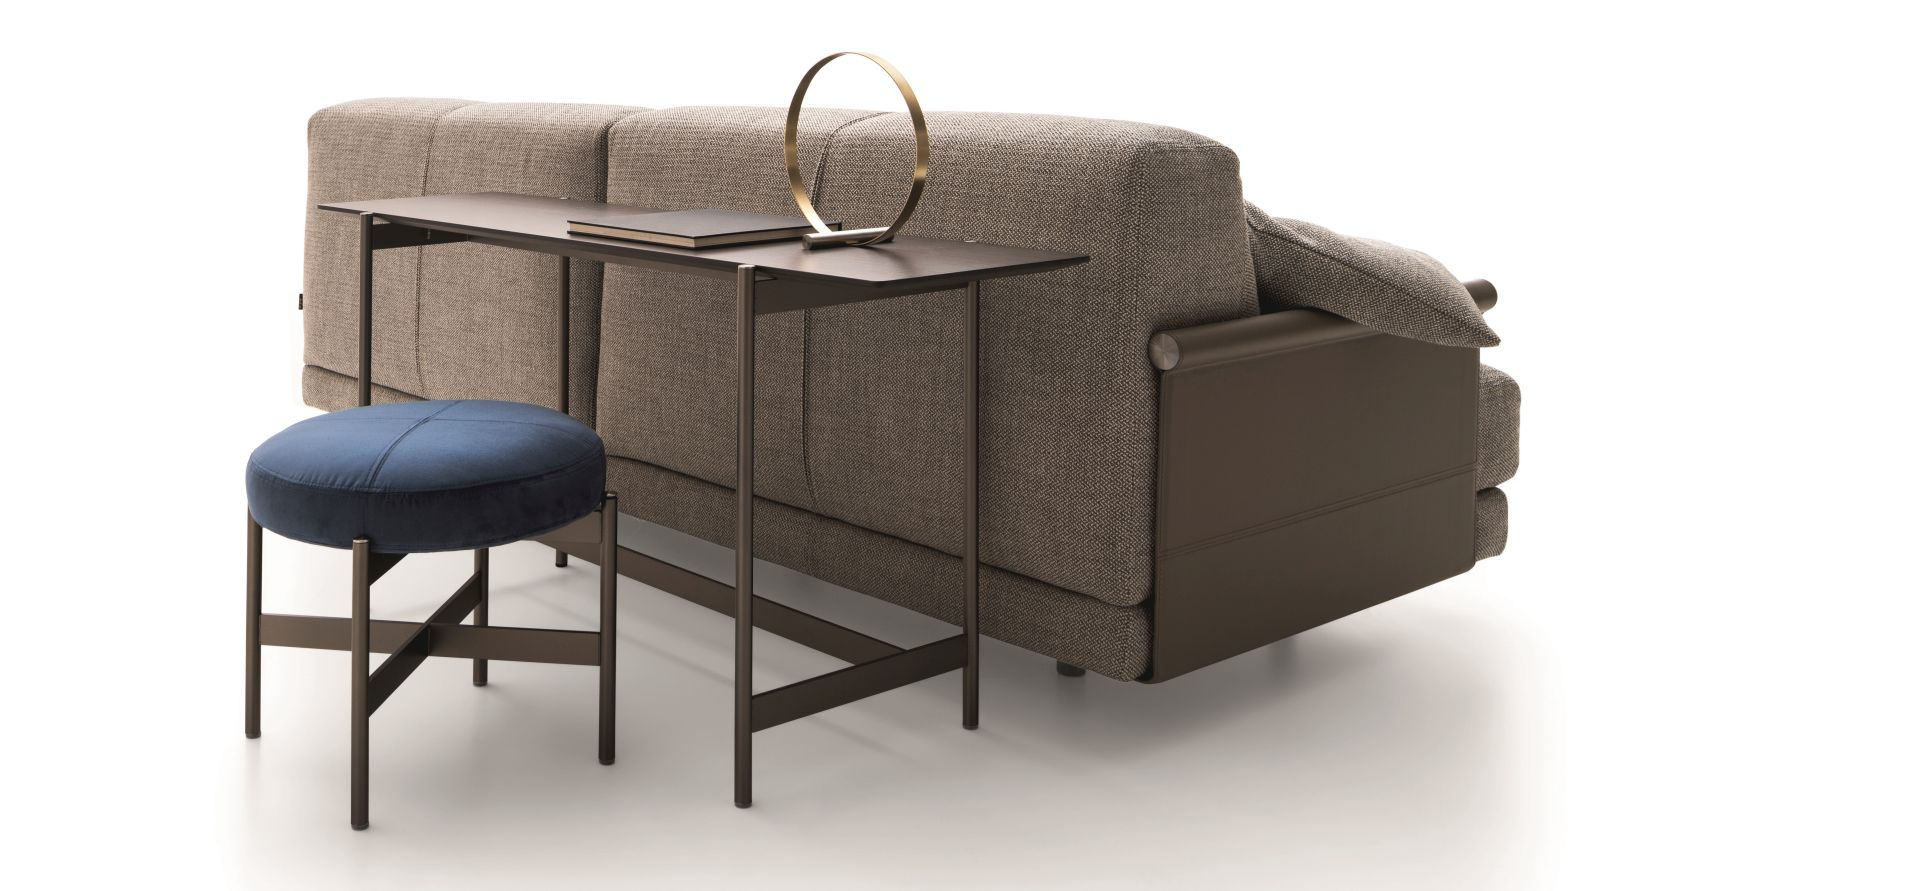 Erys Sofa Table + Erys Pouf + Althon Sofa.jpg